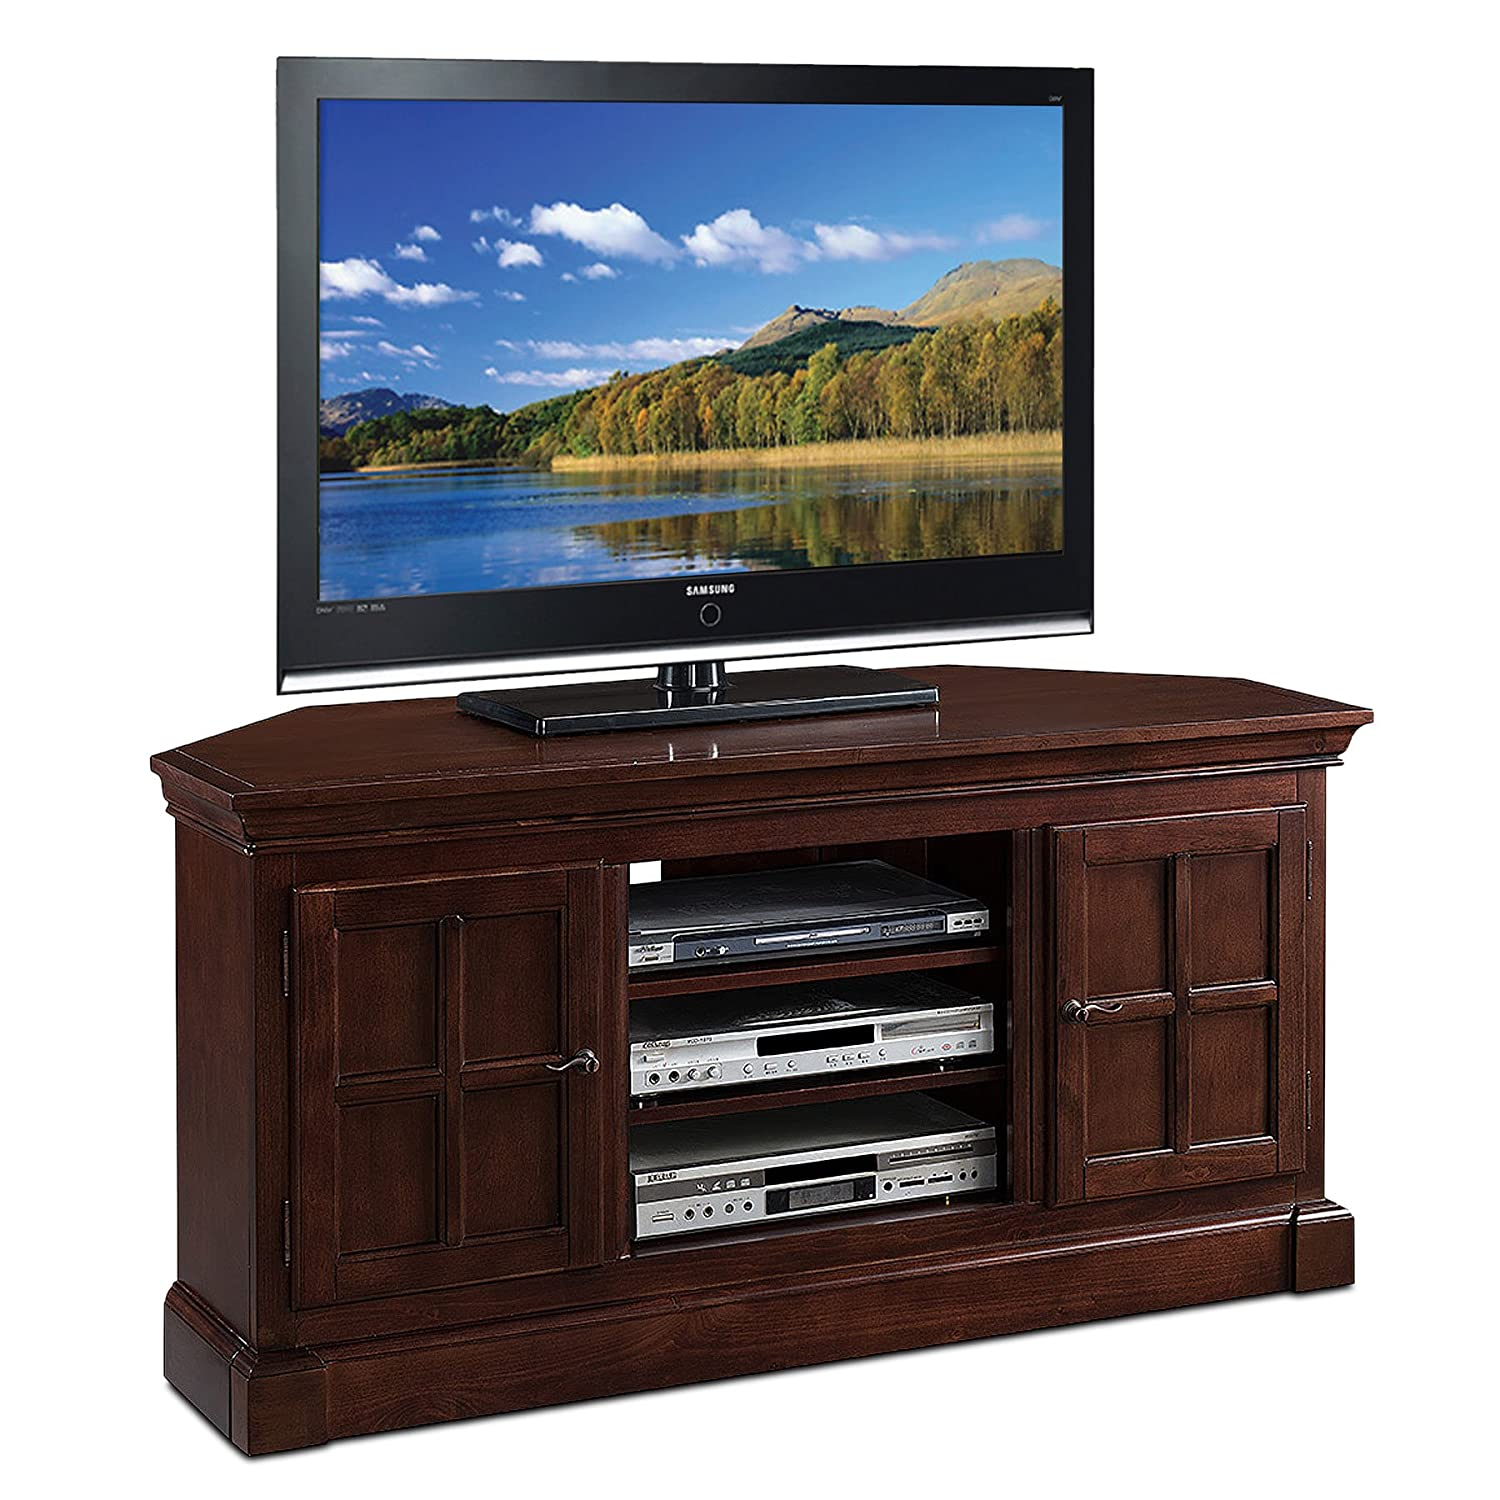 Attirant Amazon.com: Leick Bella Maison Two Door Corner TV Stand, 52: Kitchen U0026  Dining